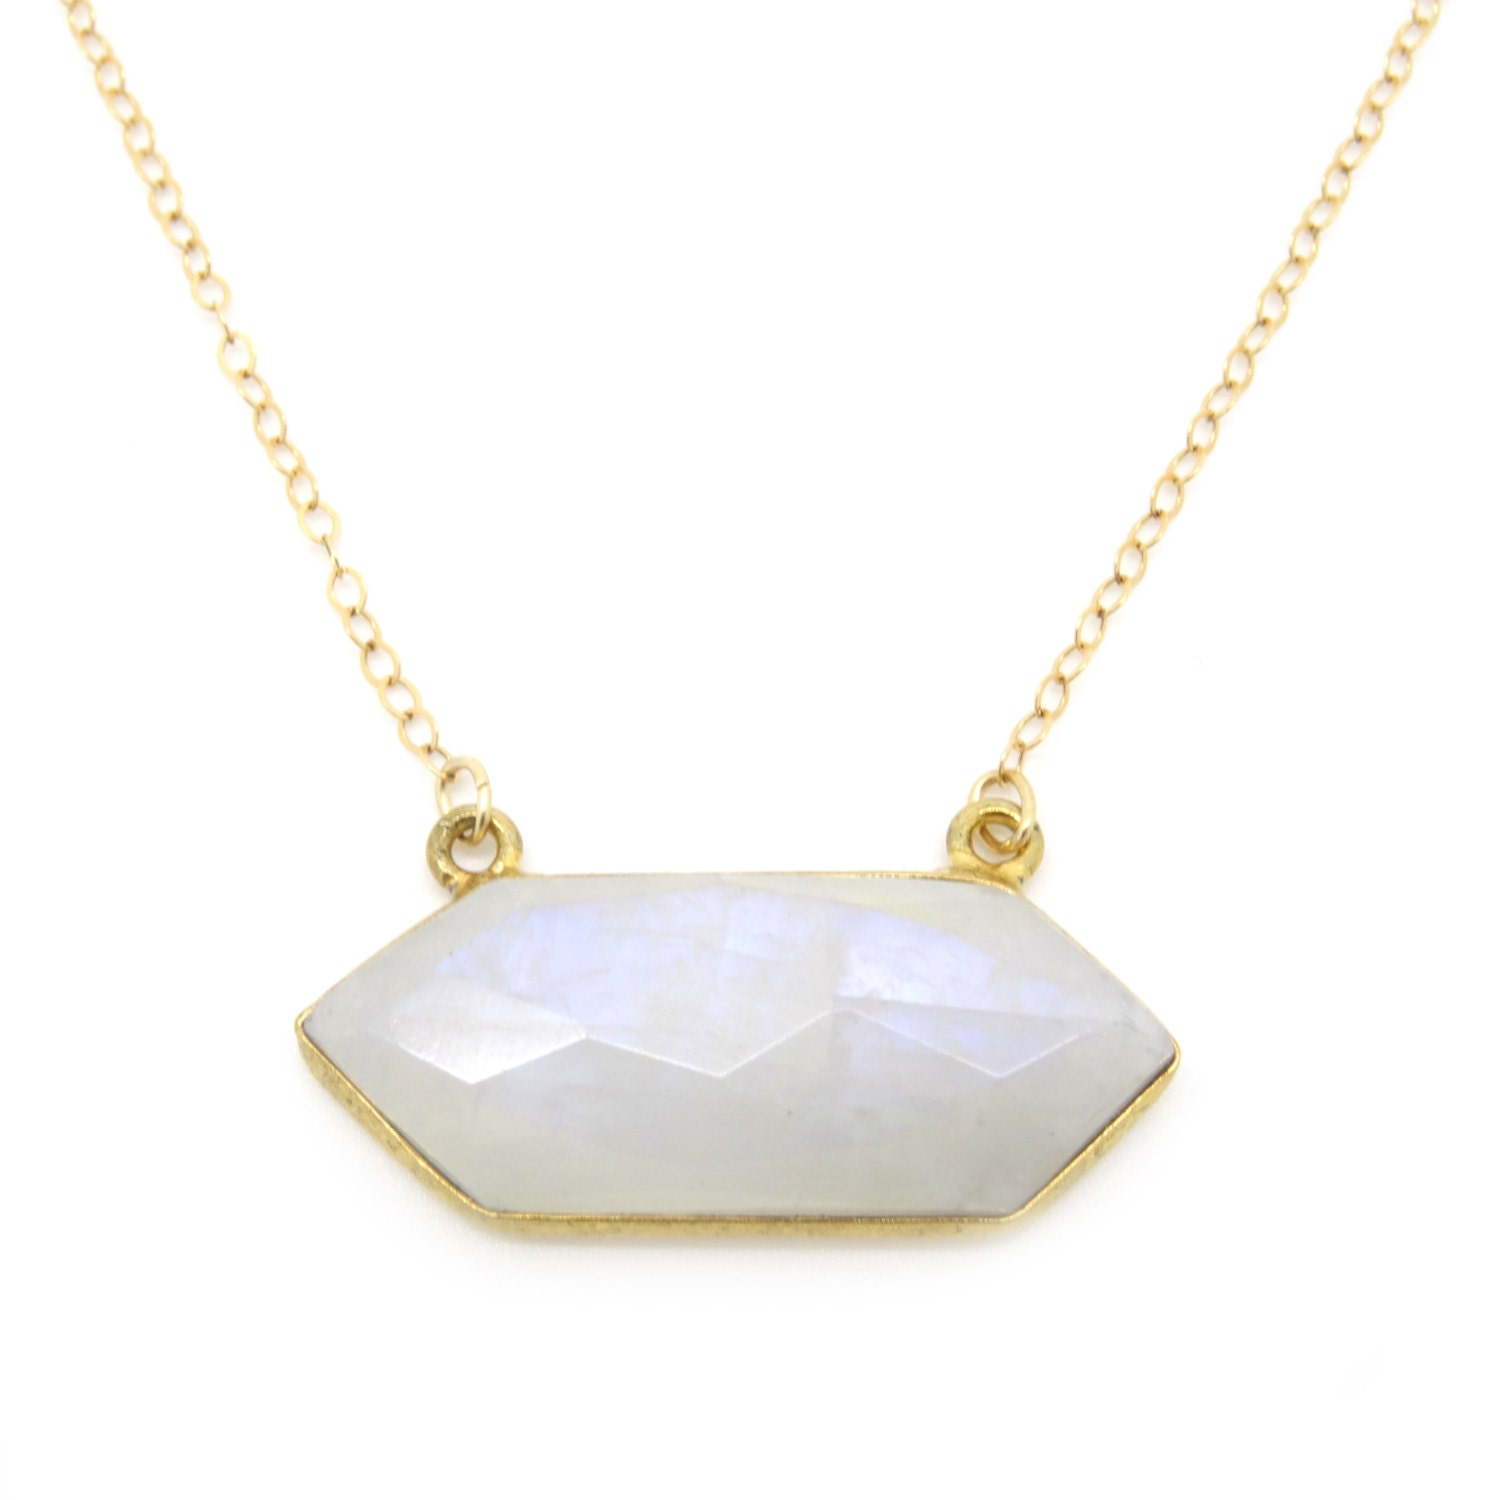 Moonstone Necklaces: Moonstone Gold Necklace Moonstone Necklace Moonstone